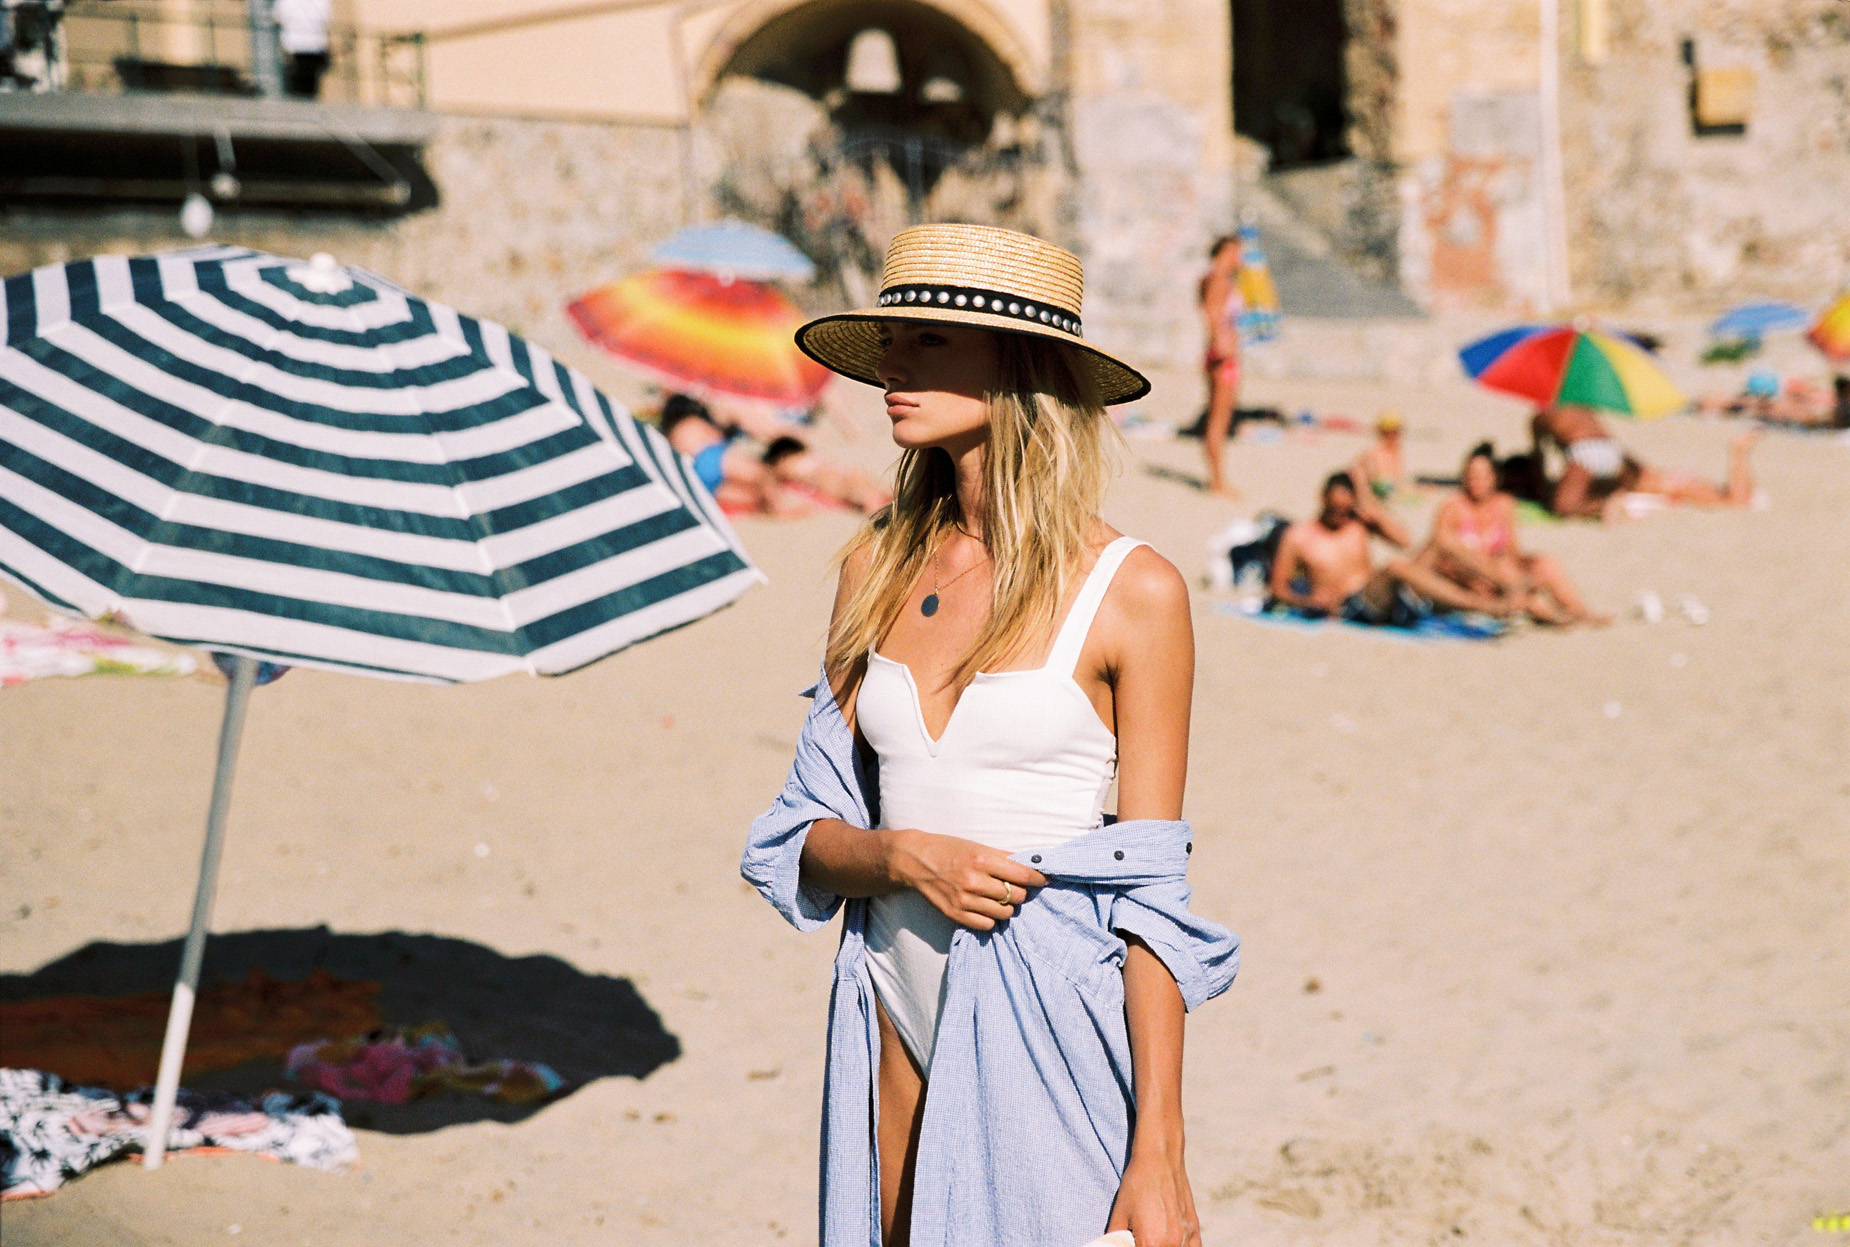 cameronhammond_freepeople016.jpg